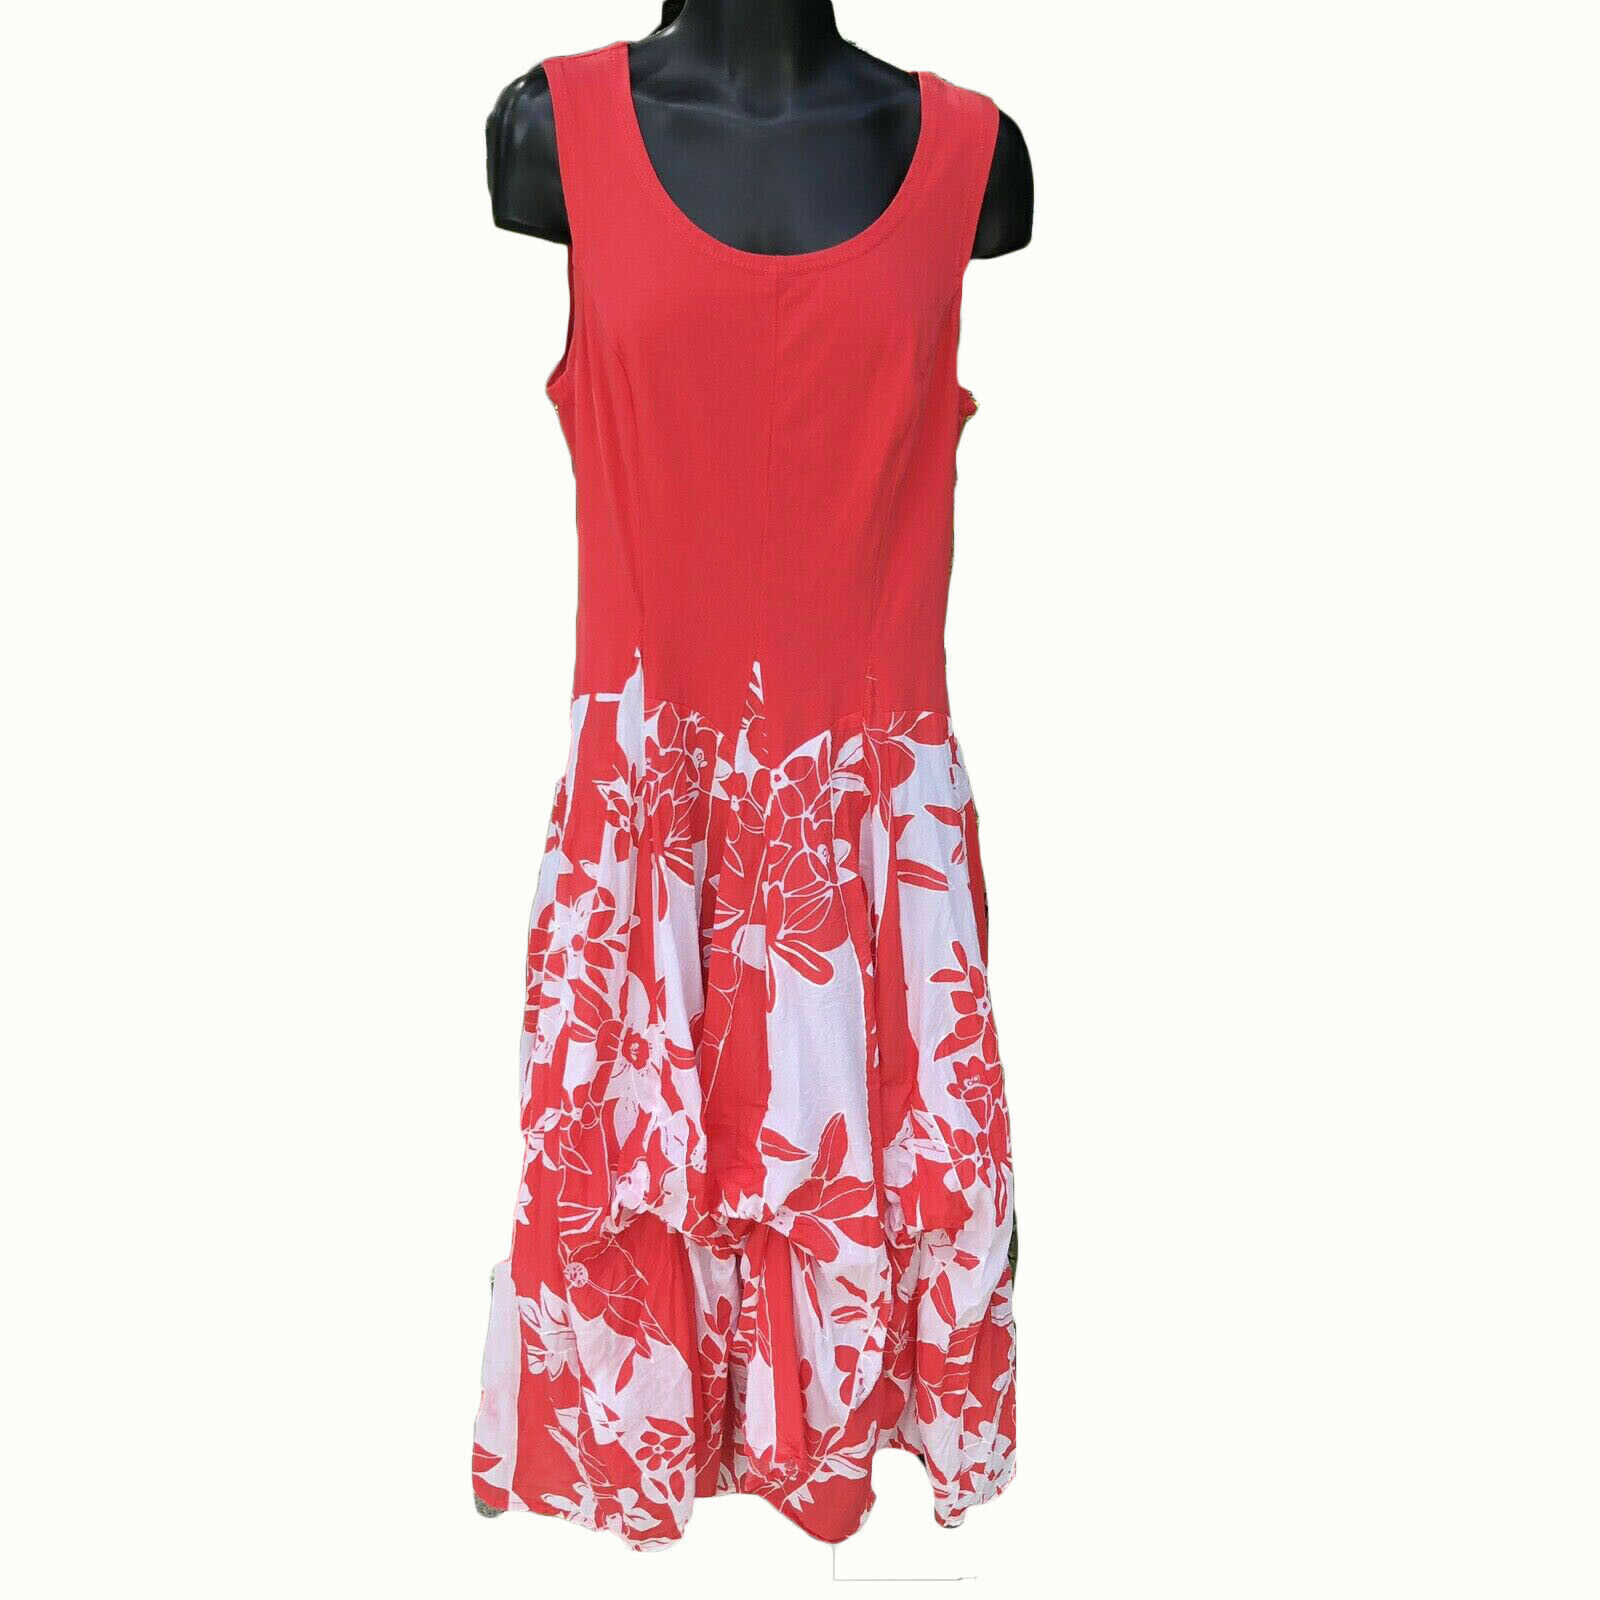 Vasna Desire Sleeveless Fit Flare Dress Size Small Coral White Floral Hawaiian